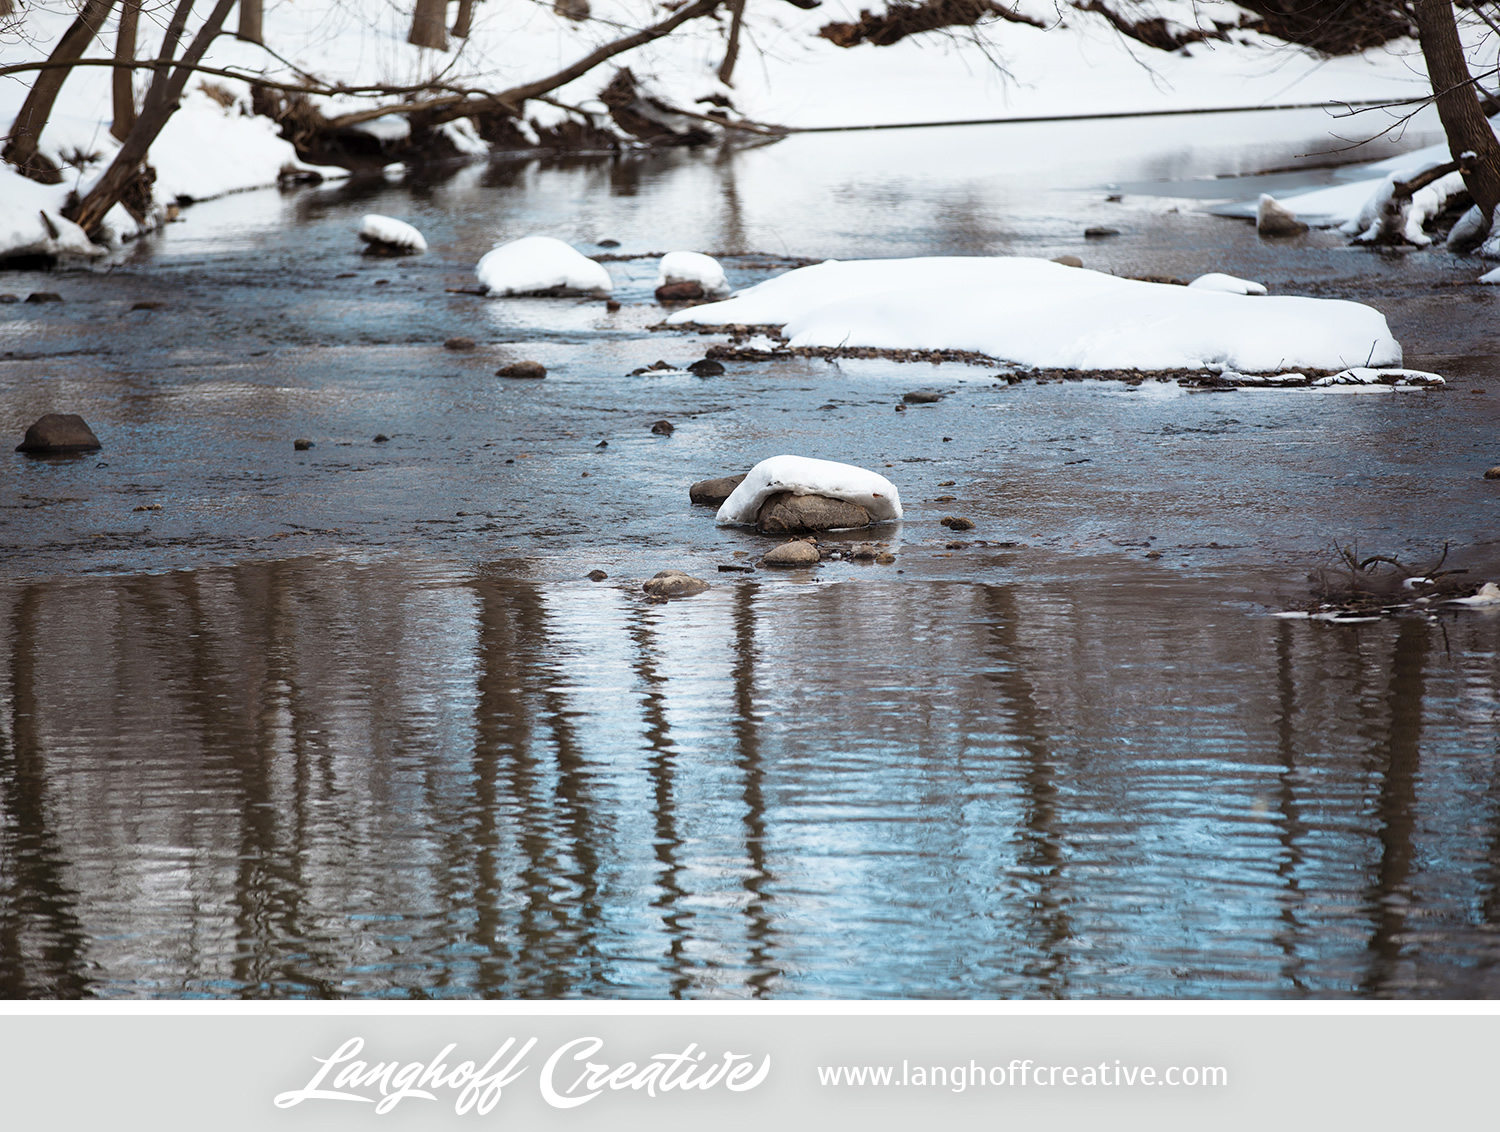 LanghoffCreative-20130308-winter2-image.jpg